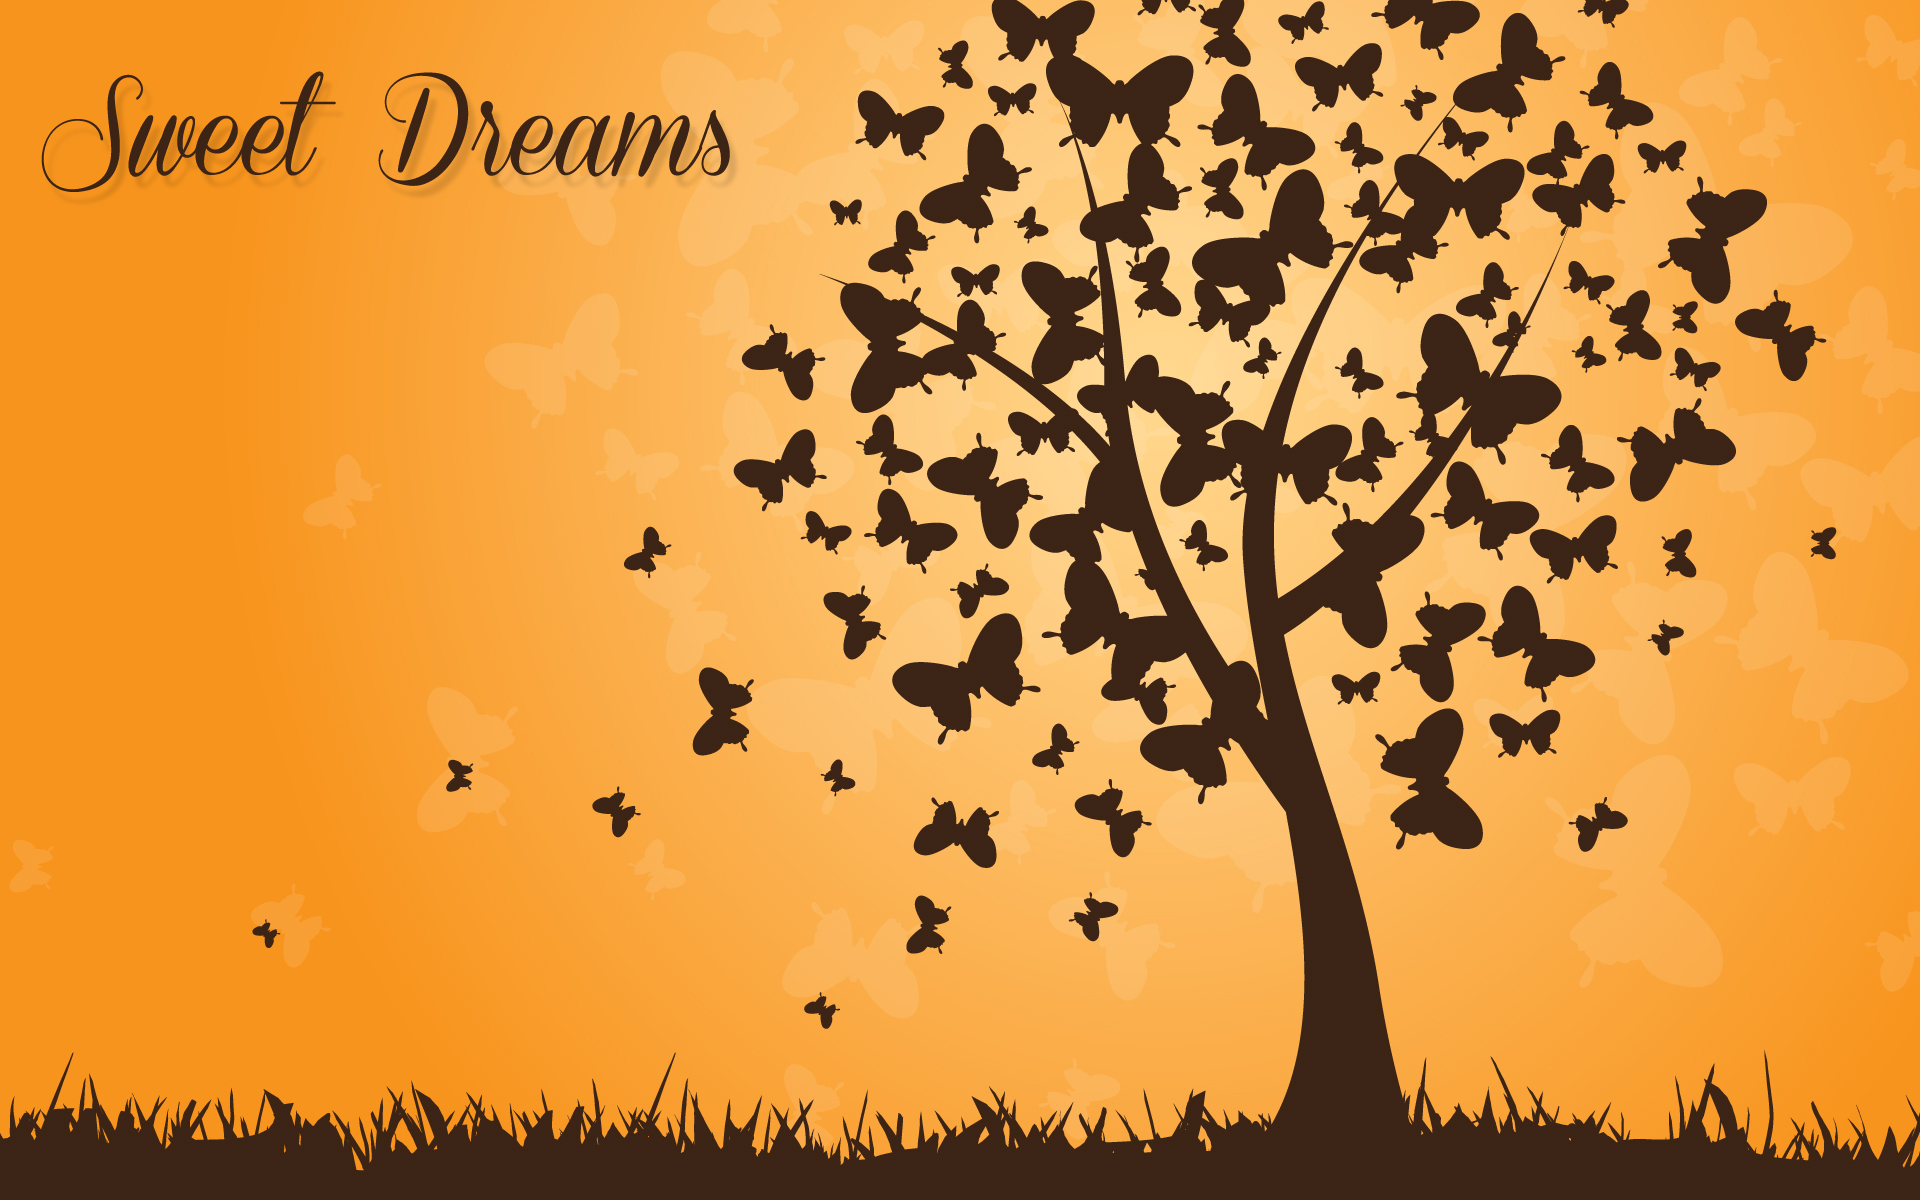 sweet dreams good night background hd wallpaper